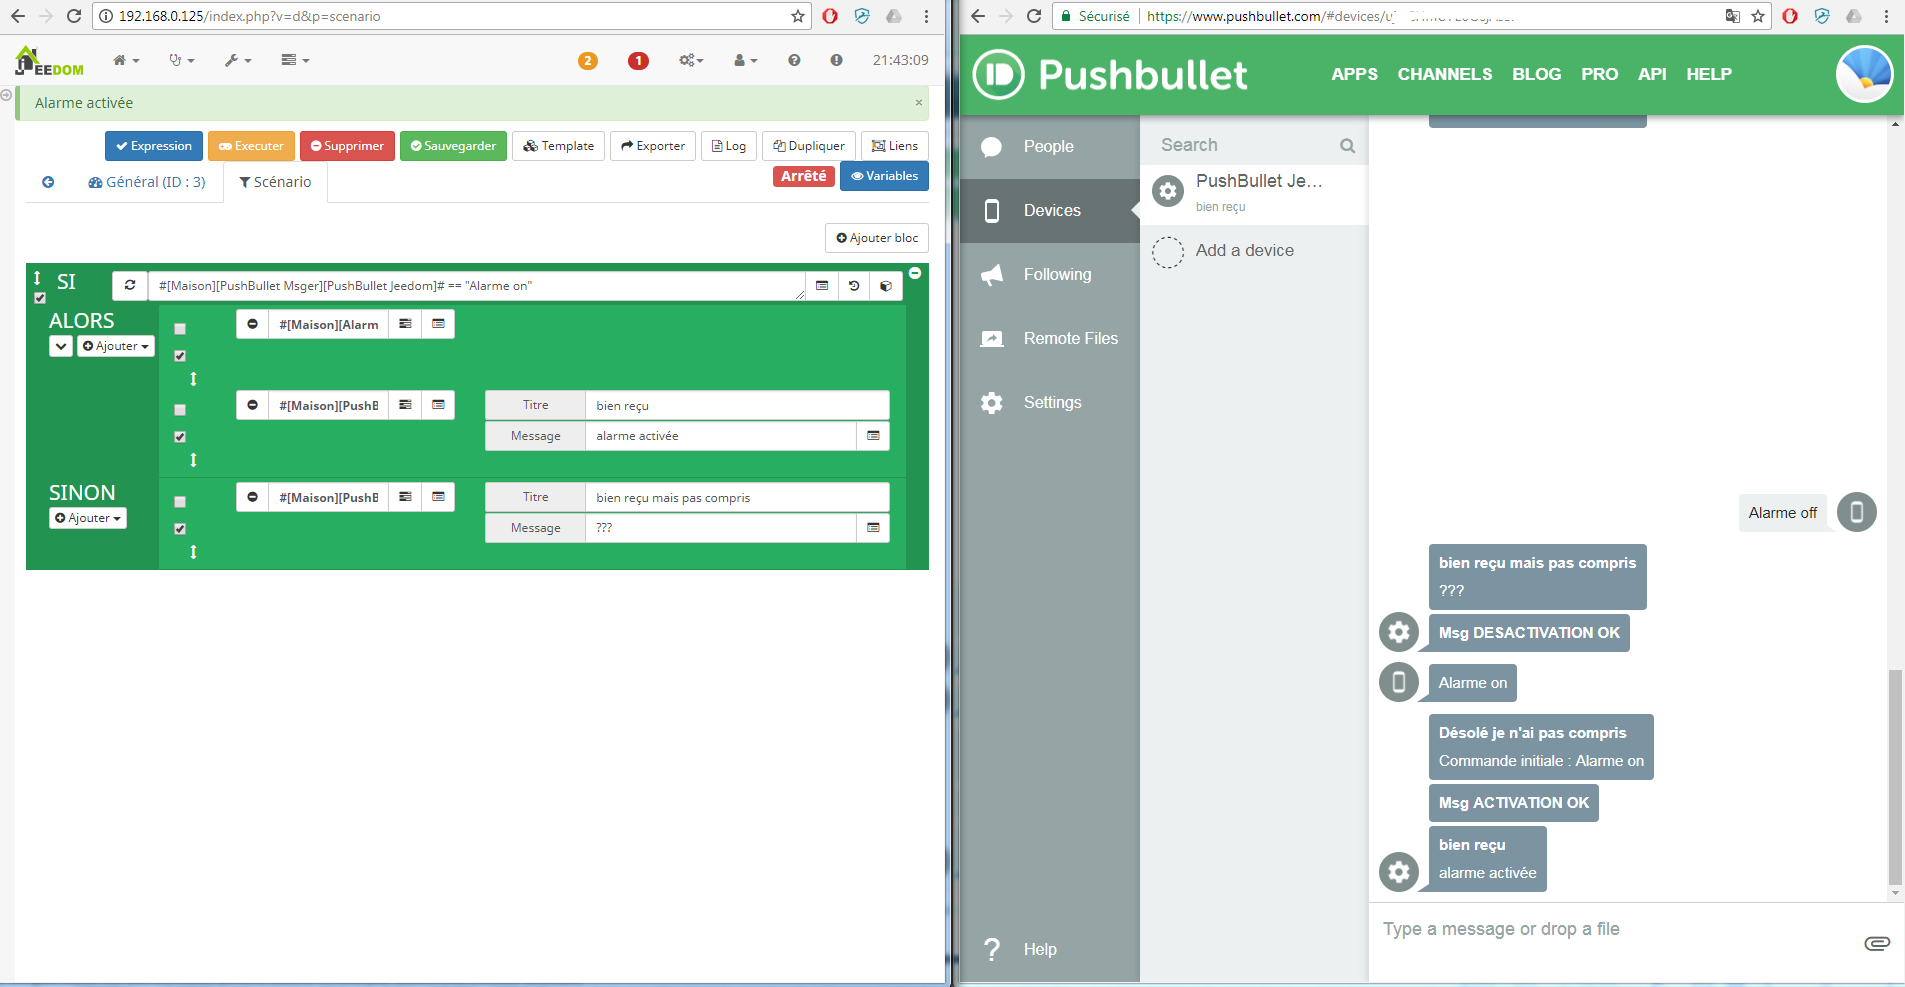 pushbullet.png